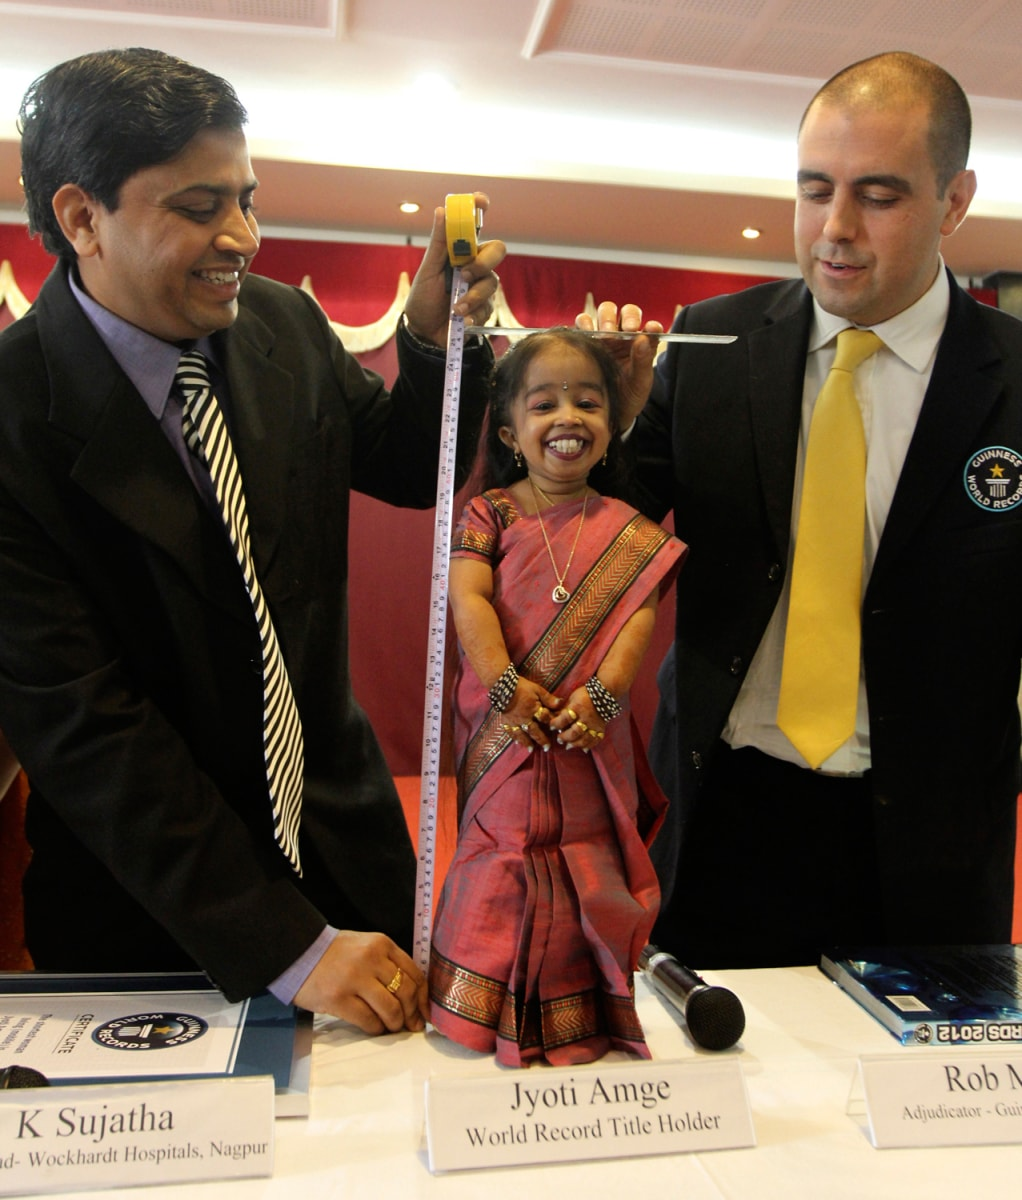 image the guinness world records adjudicator rob molloy and indian doctor k sujatha measure